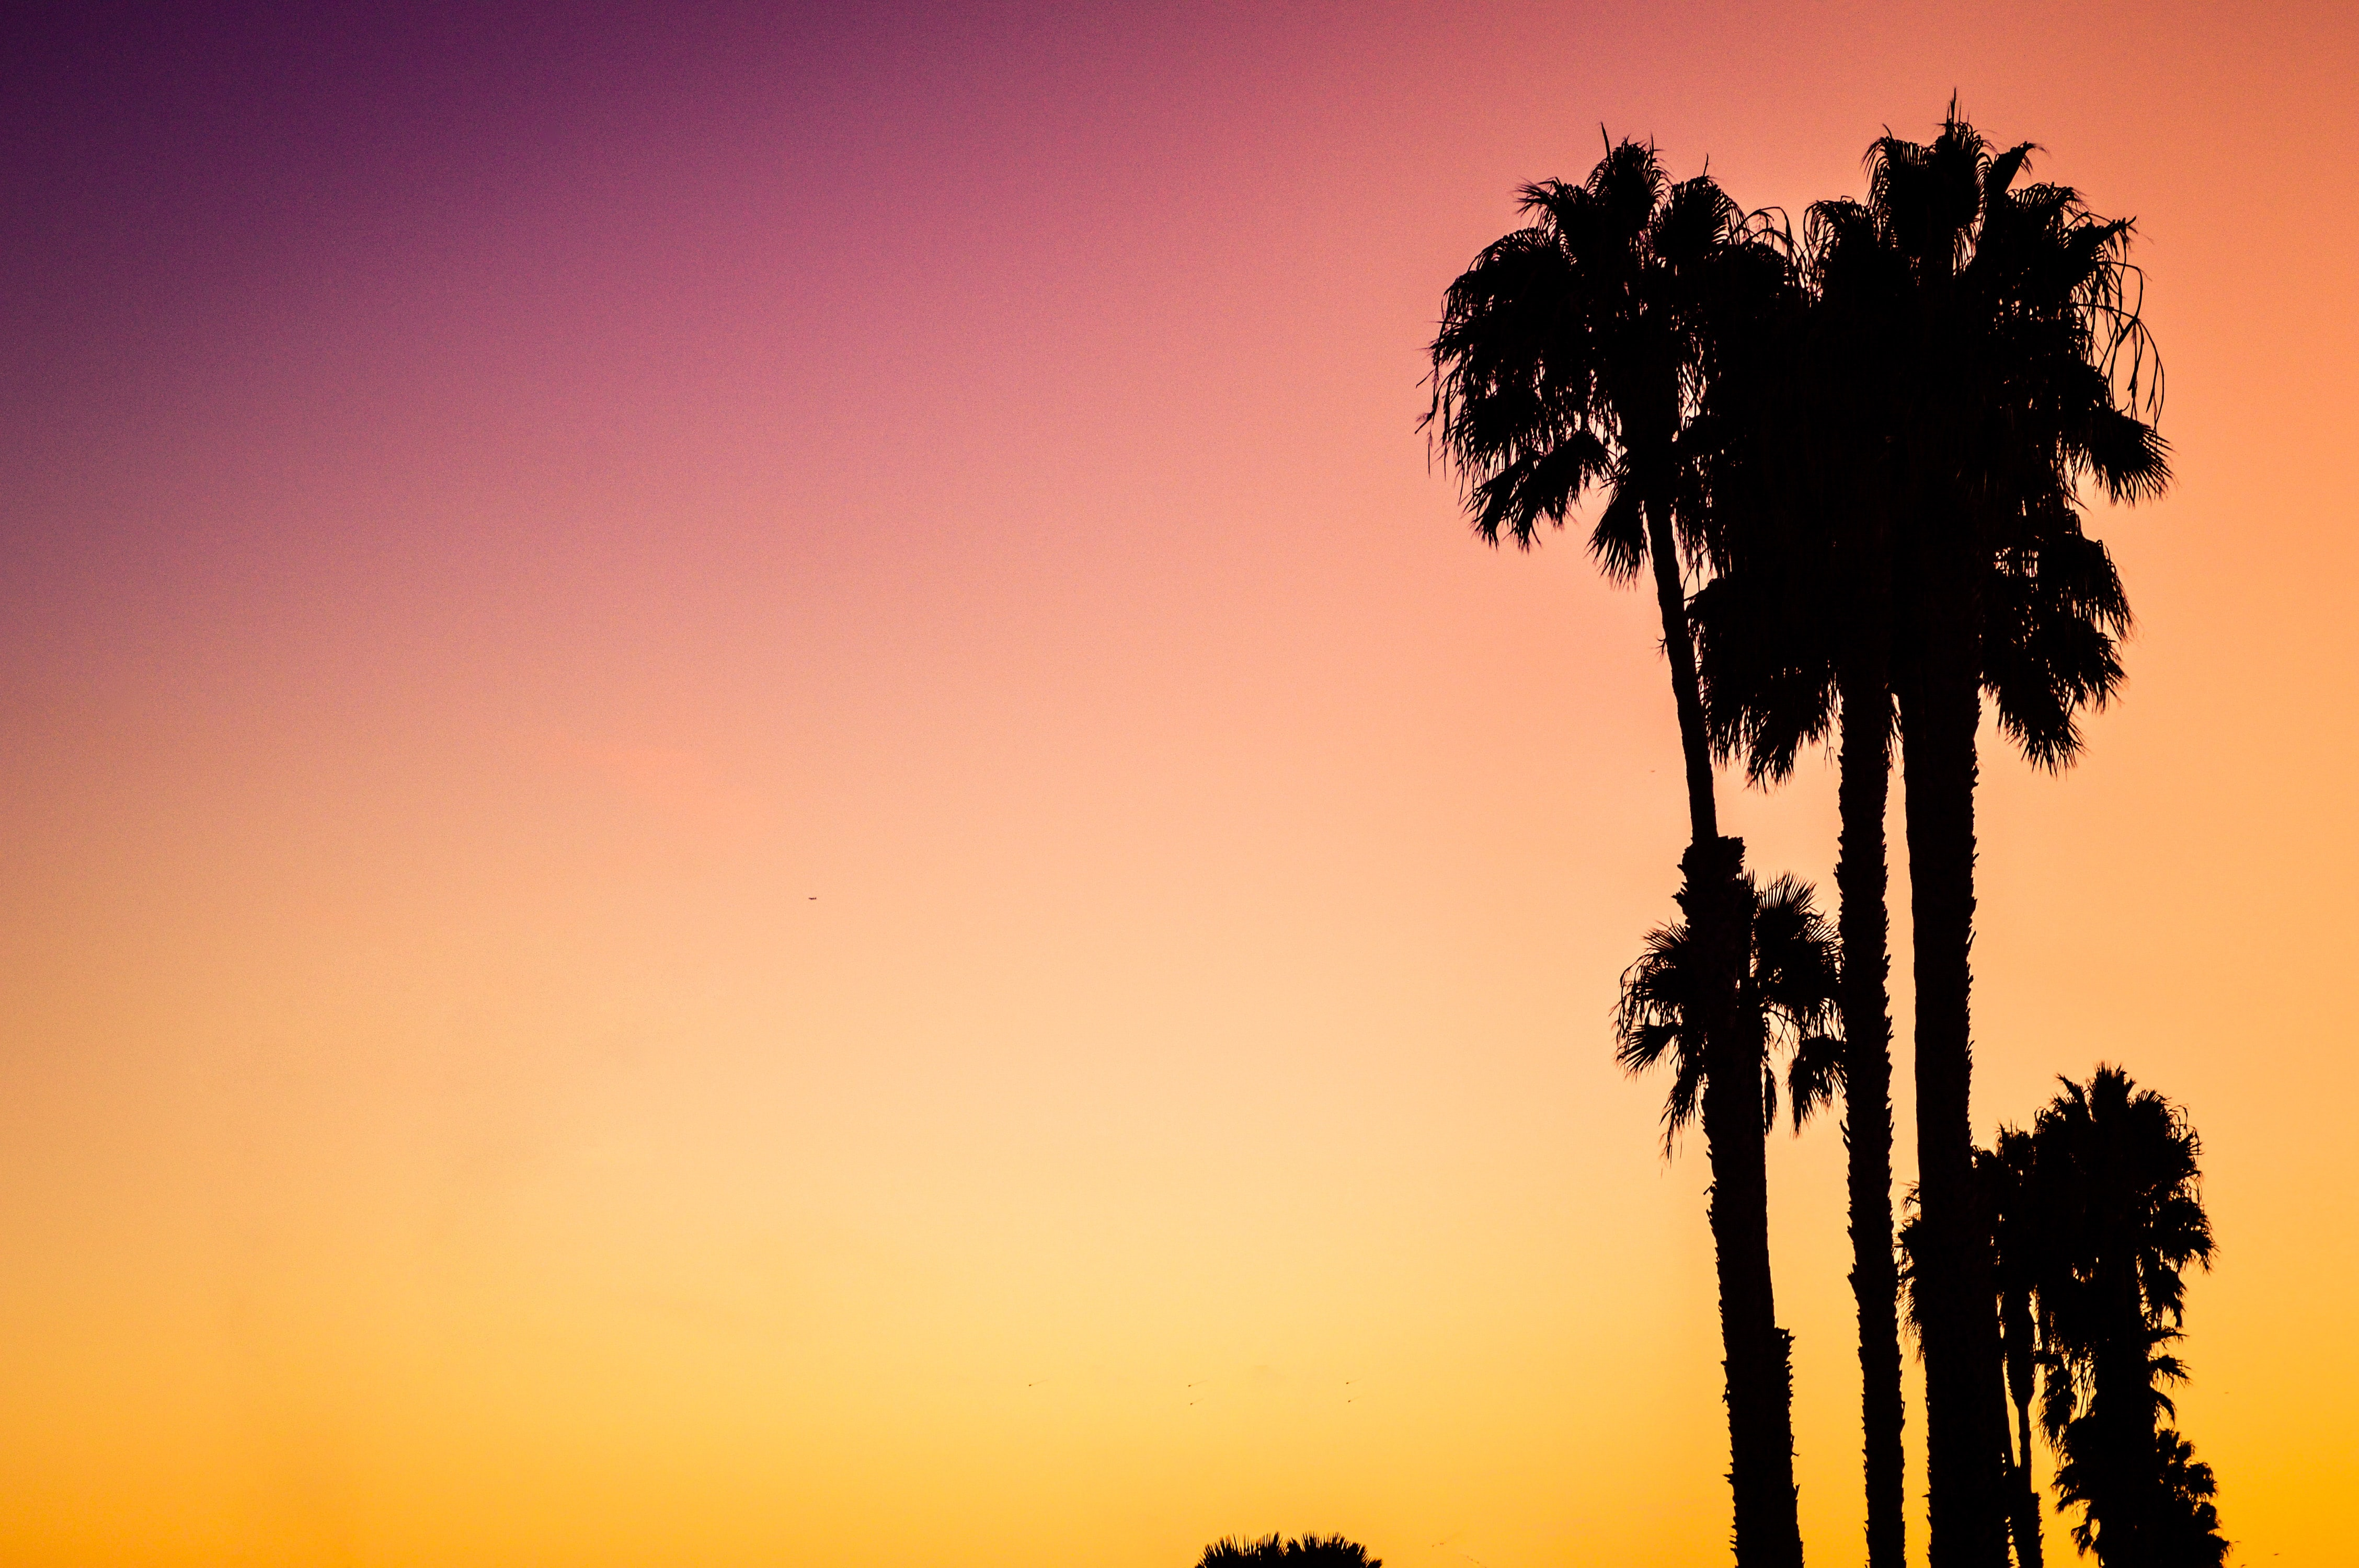 A silhouette of palm trees on Venice Beach, against a vibrant pink and orange sunset sky